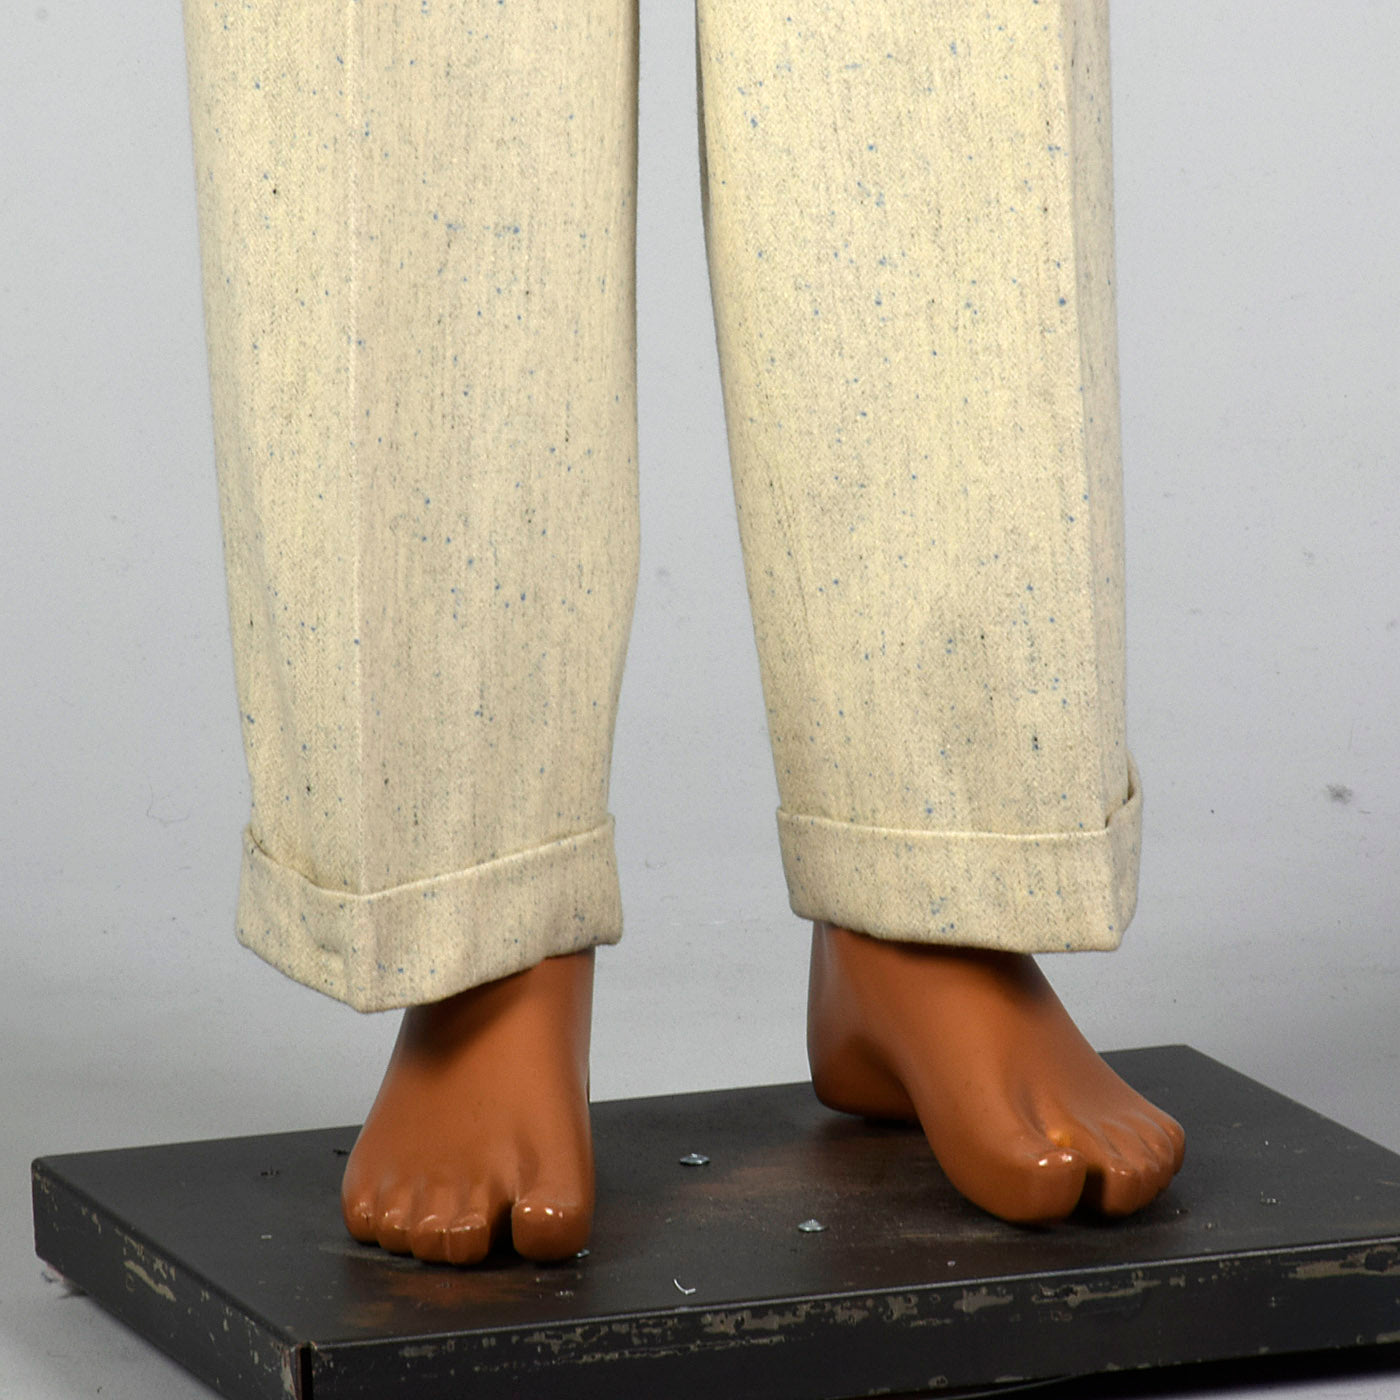 1950s Mens Hollywood Waist Wool Pants with Blue Flecks